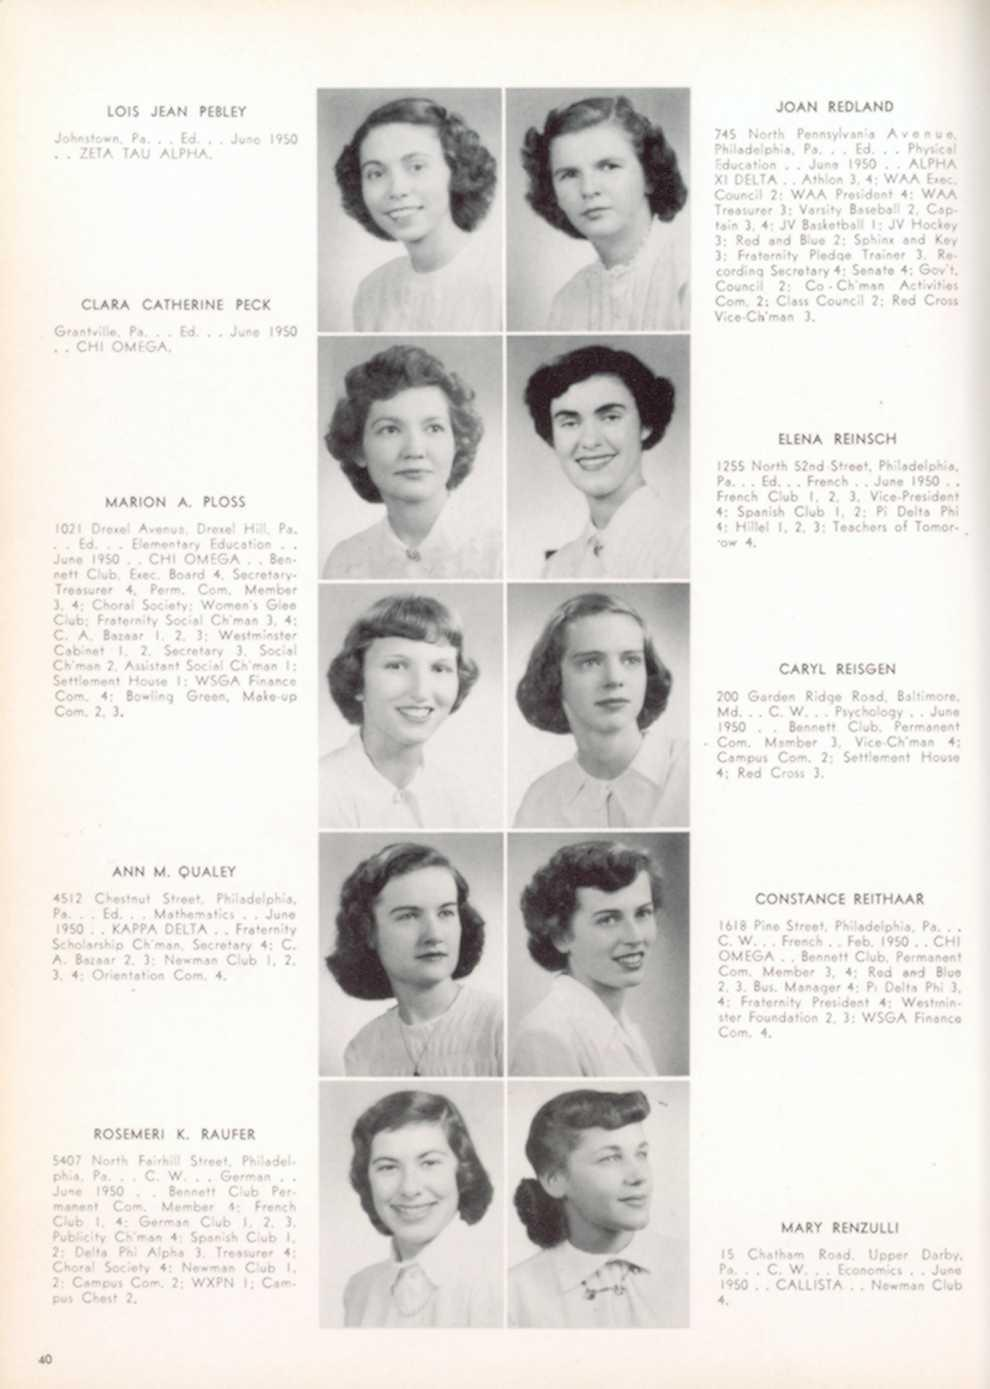 German raternity Campu nnett 4 Com June ptain LOIS JEAN PEBLE Y Johnstown, Pa Ed June 1950 ZET A T AU ALPH A CLARA CATHERINE PEC K Grantville, Pa, June 1950 CHI OMEG A JOAN REDLAN D 745 N orth